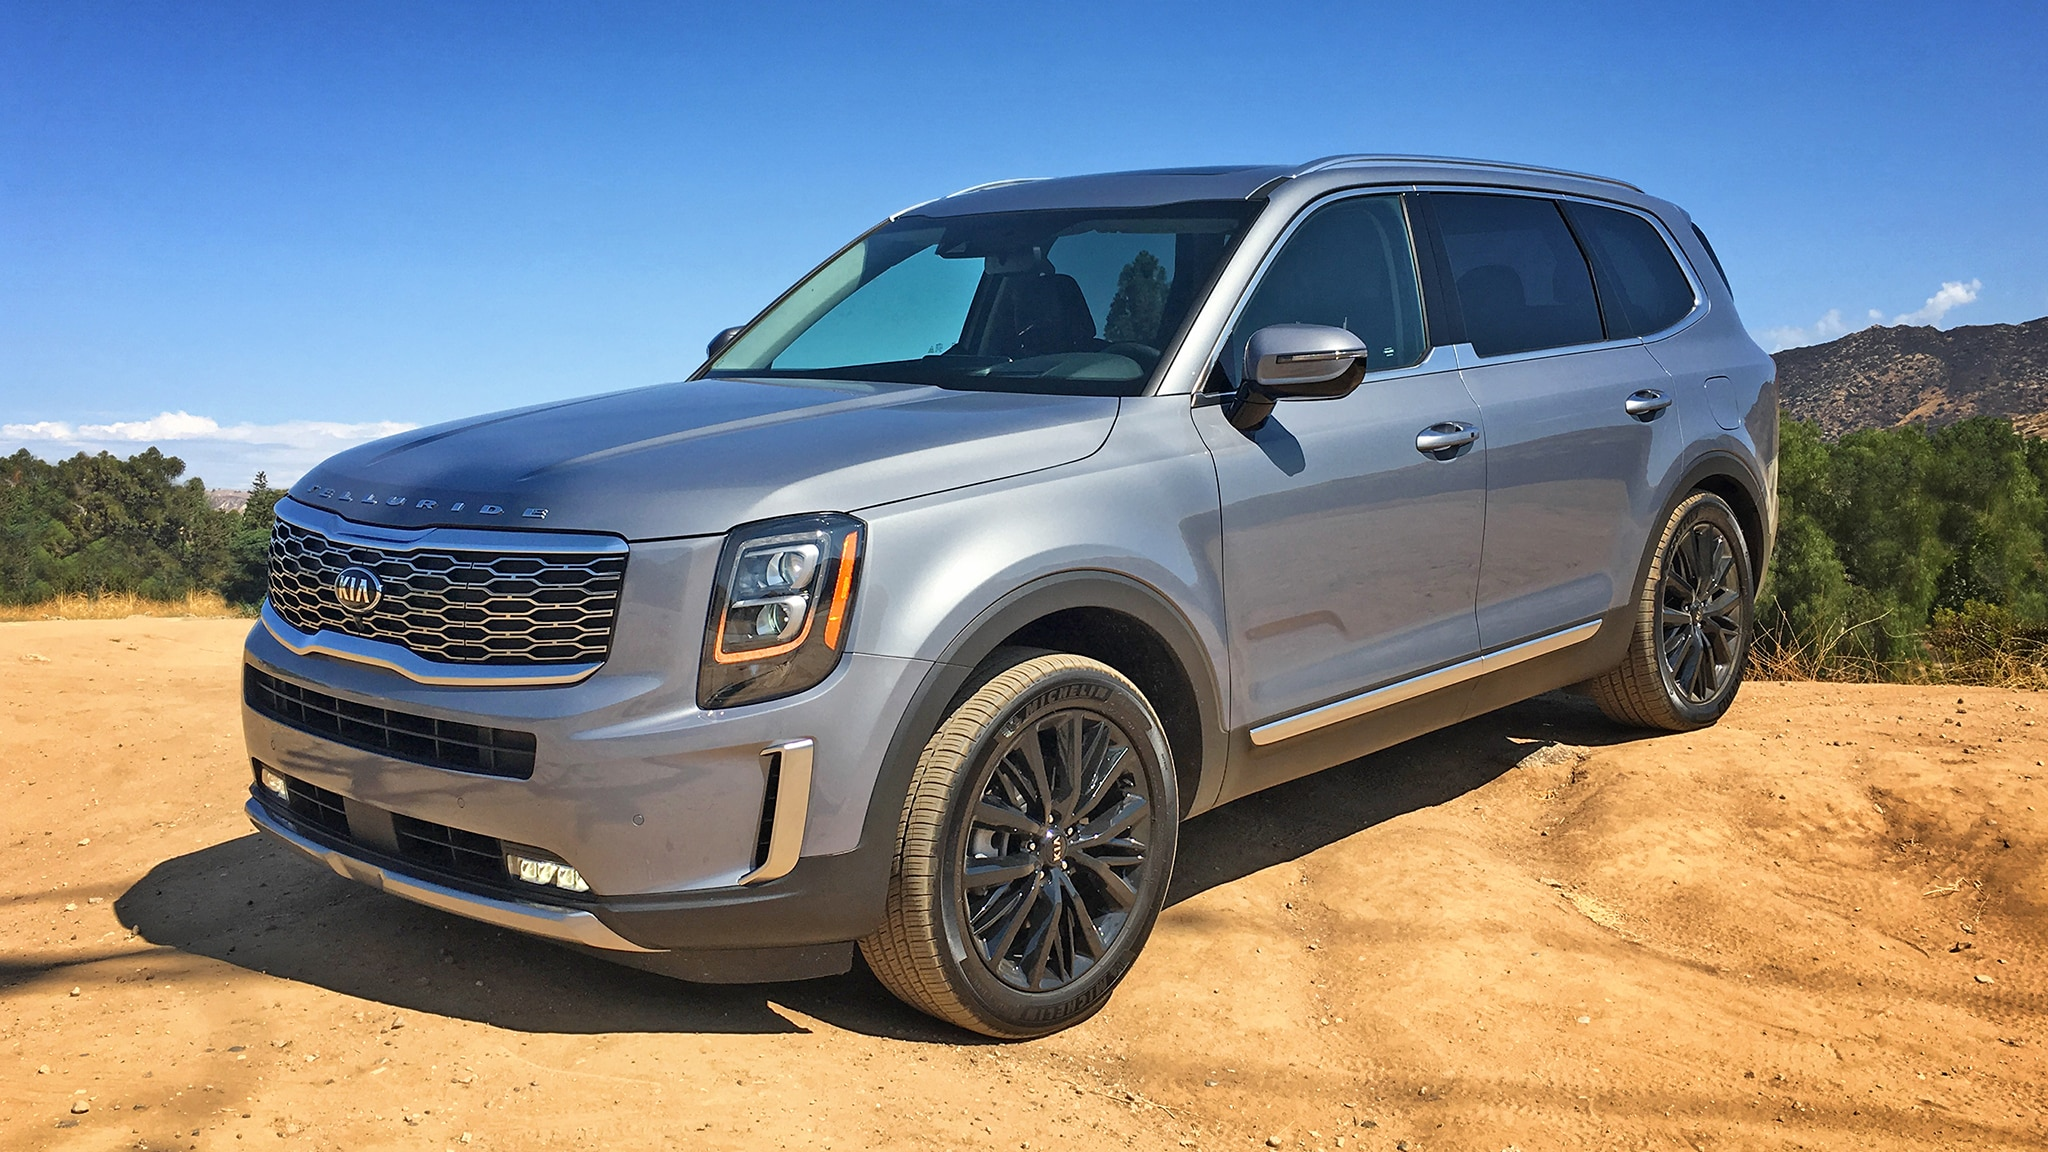 2020 Kia Telluride Review: Yep, It's Stellar | Automobile Magazine